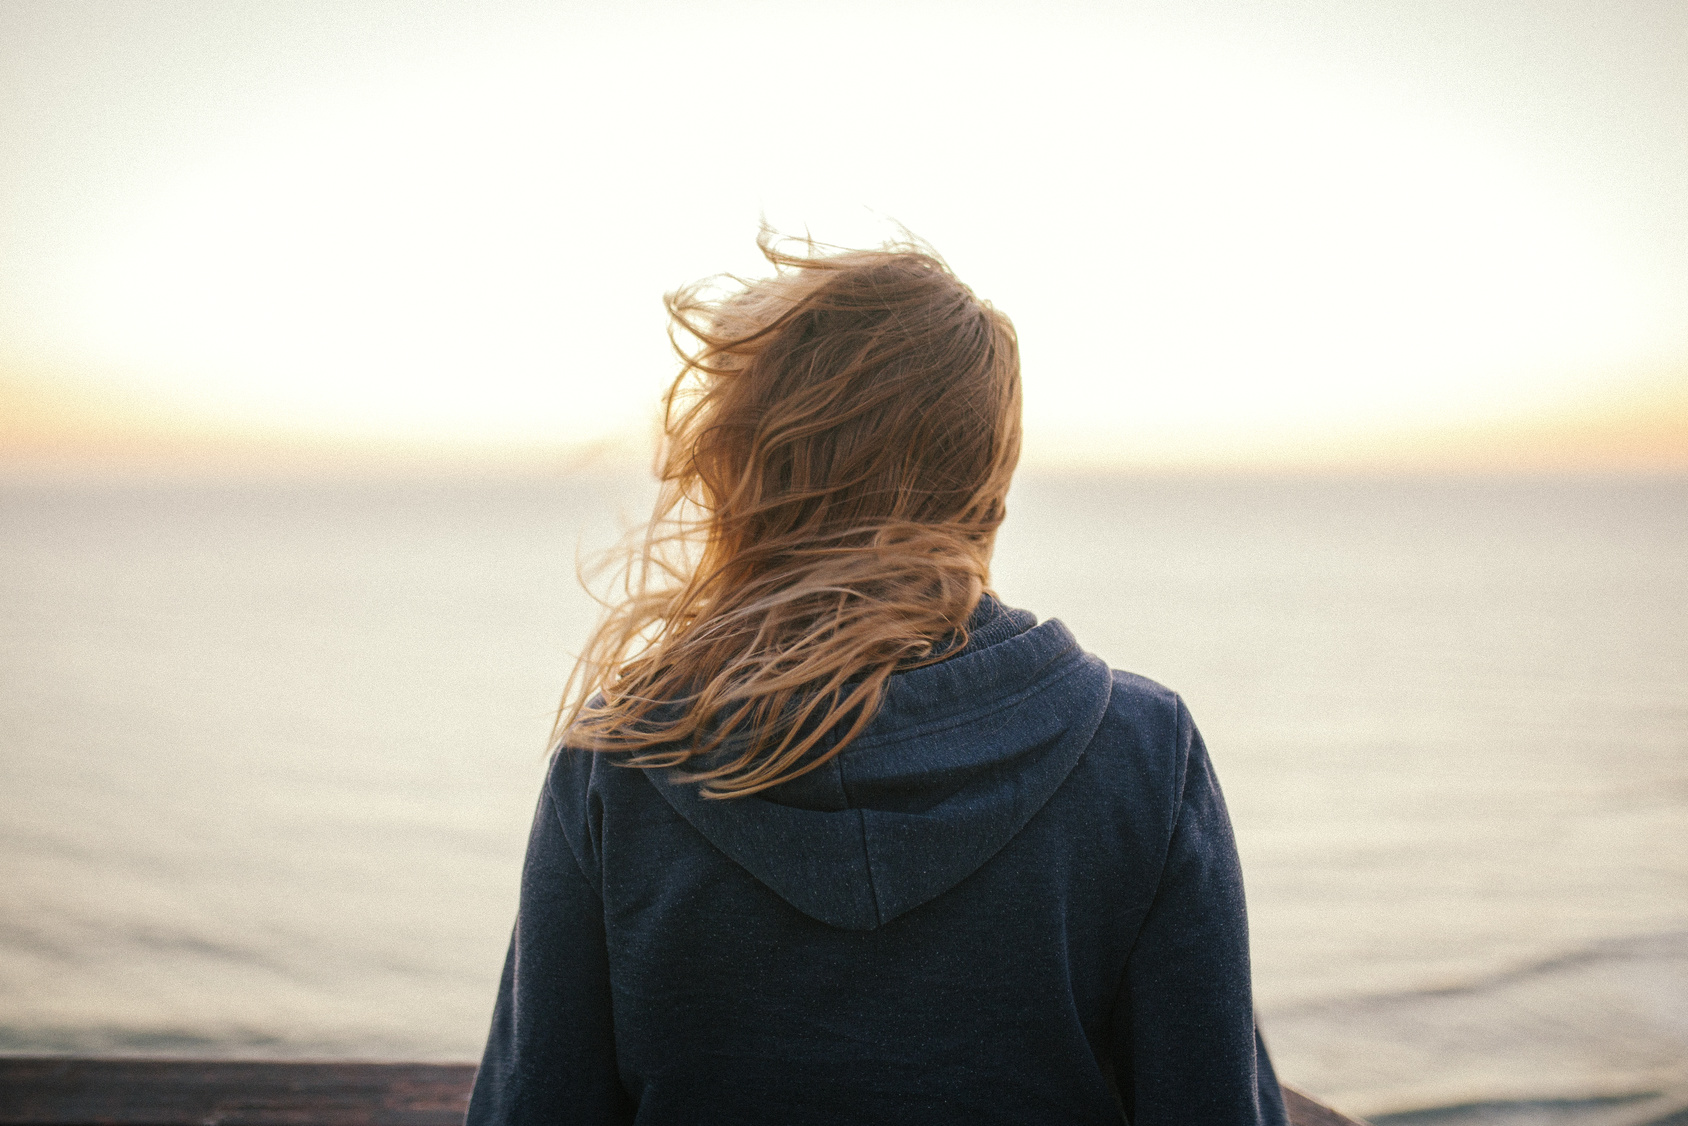 suicidal-ideation , An anonymous blond woman standing in the wind looking at the sea or ocean